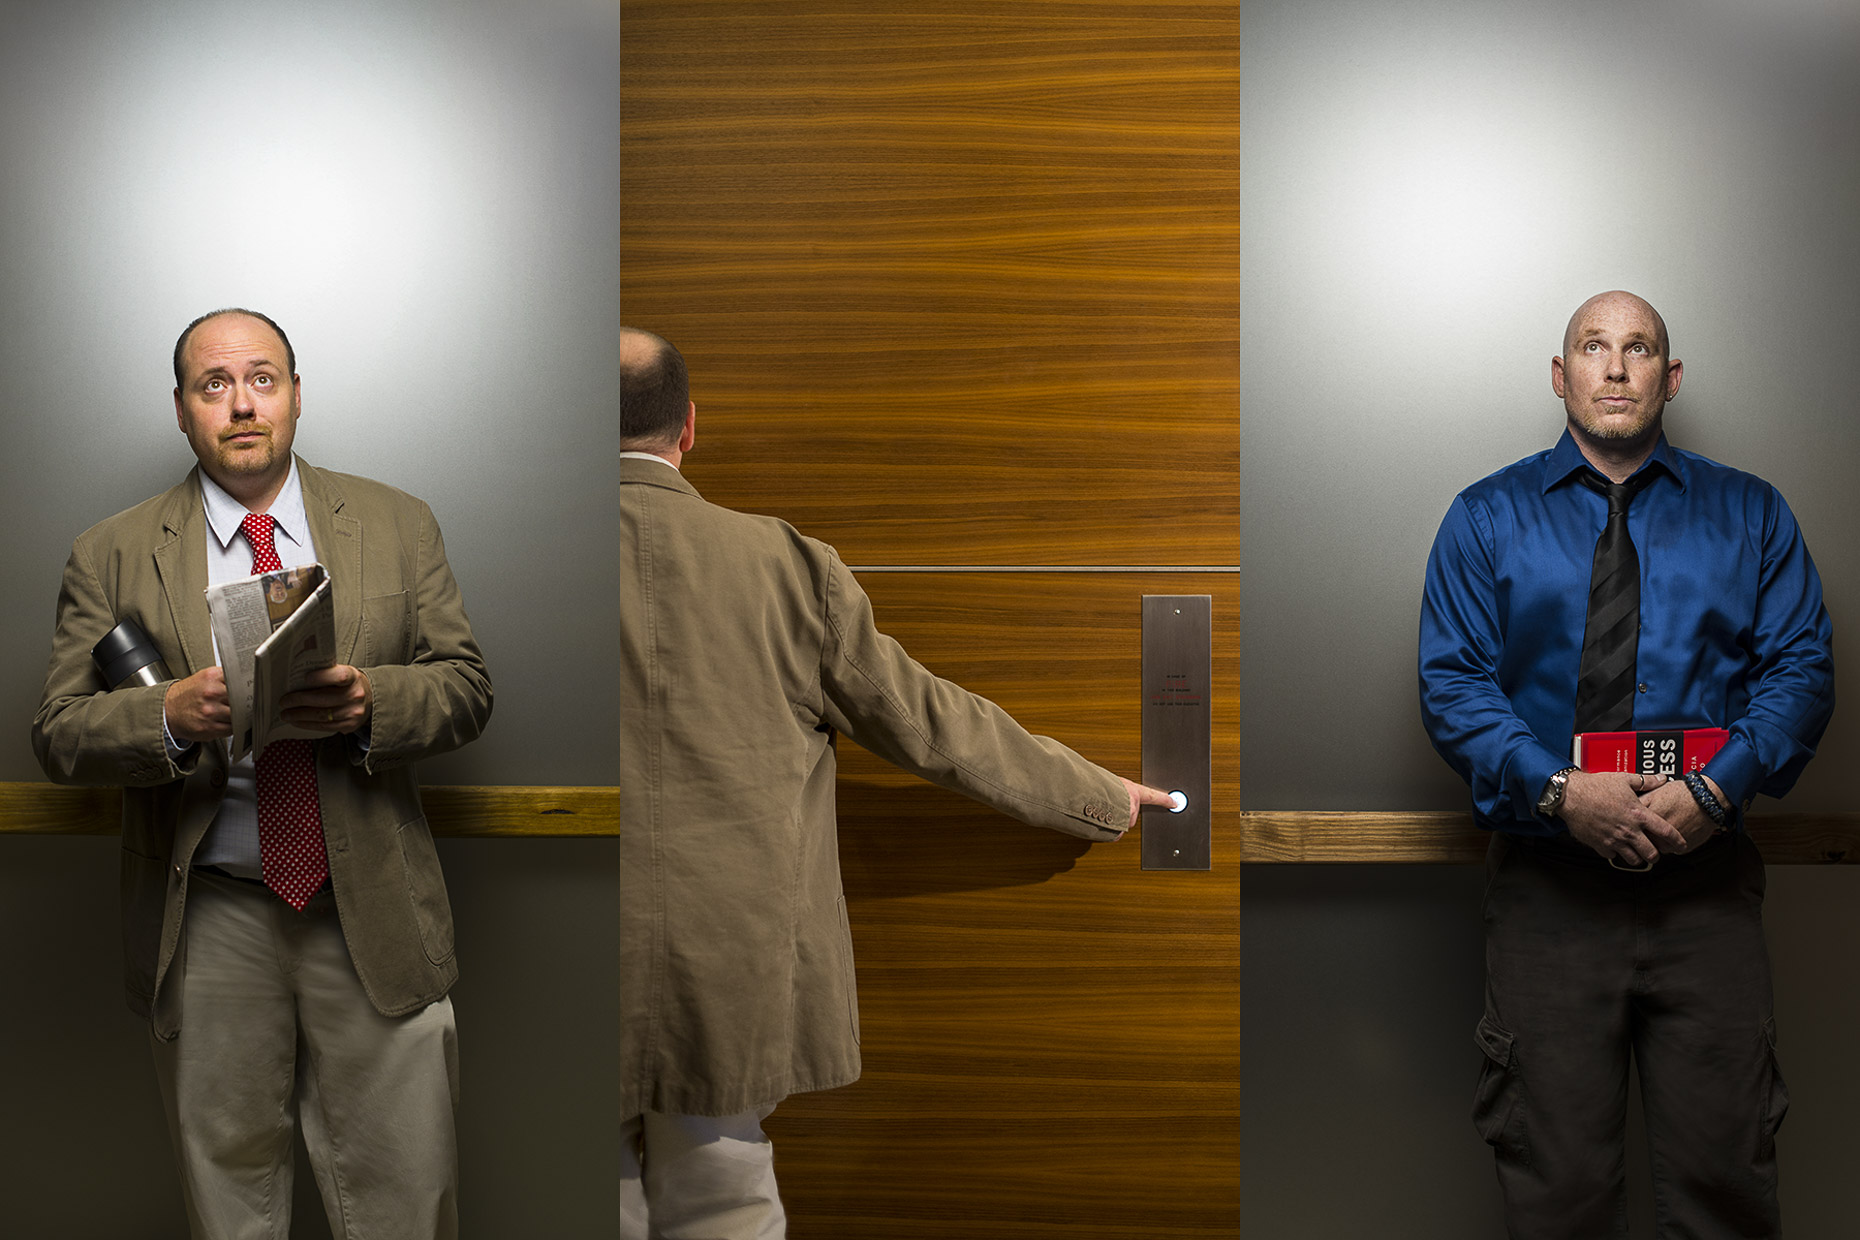 Men in corporate clothing using elevator